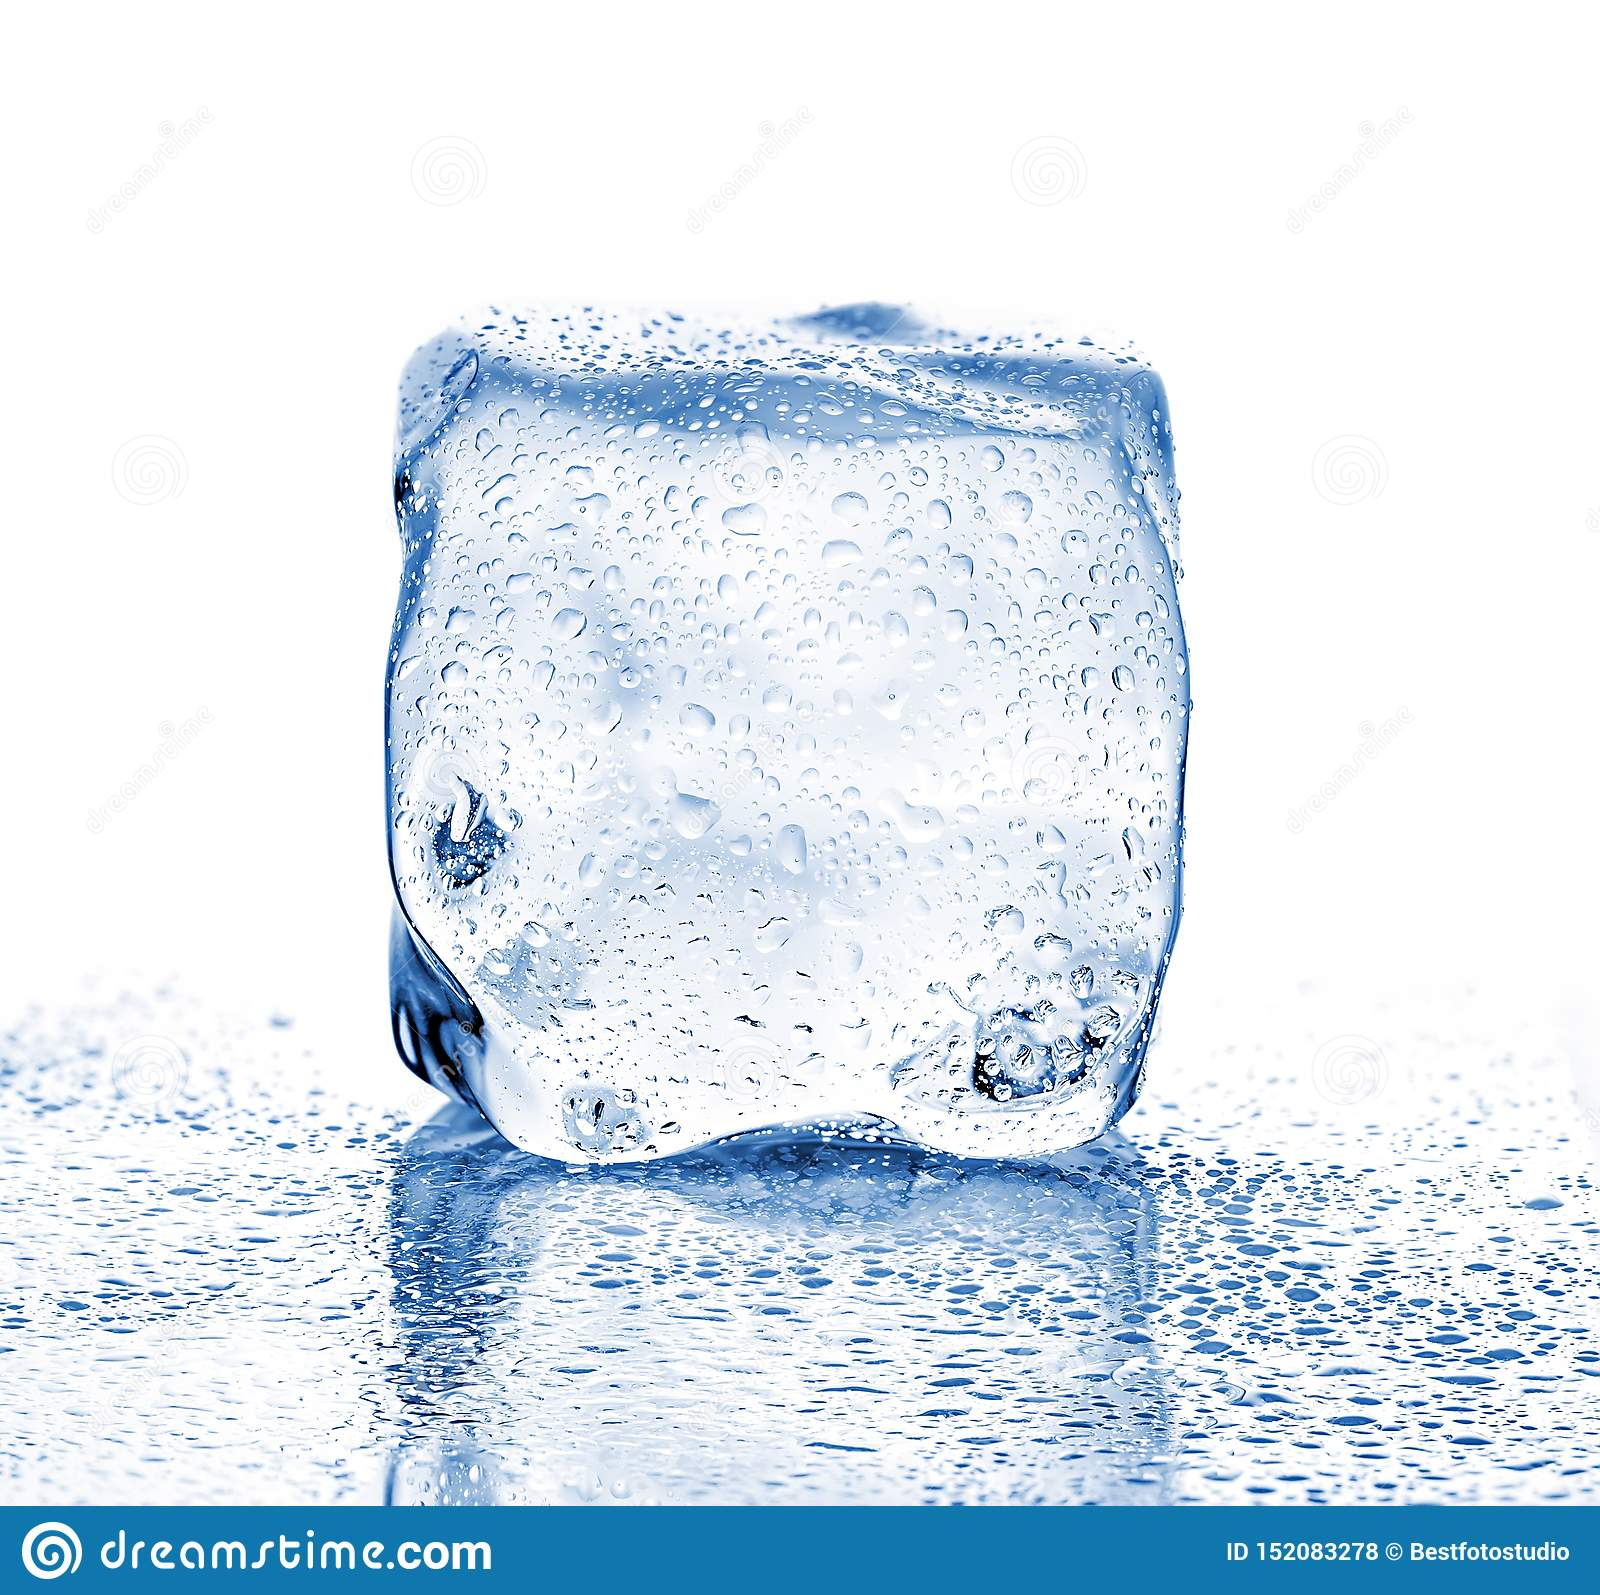 Melting Ice Cube Close Up On A White Background Stock